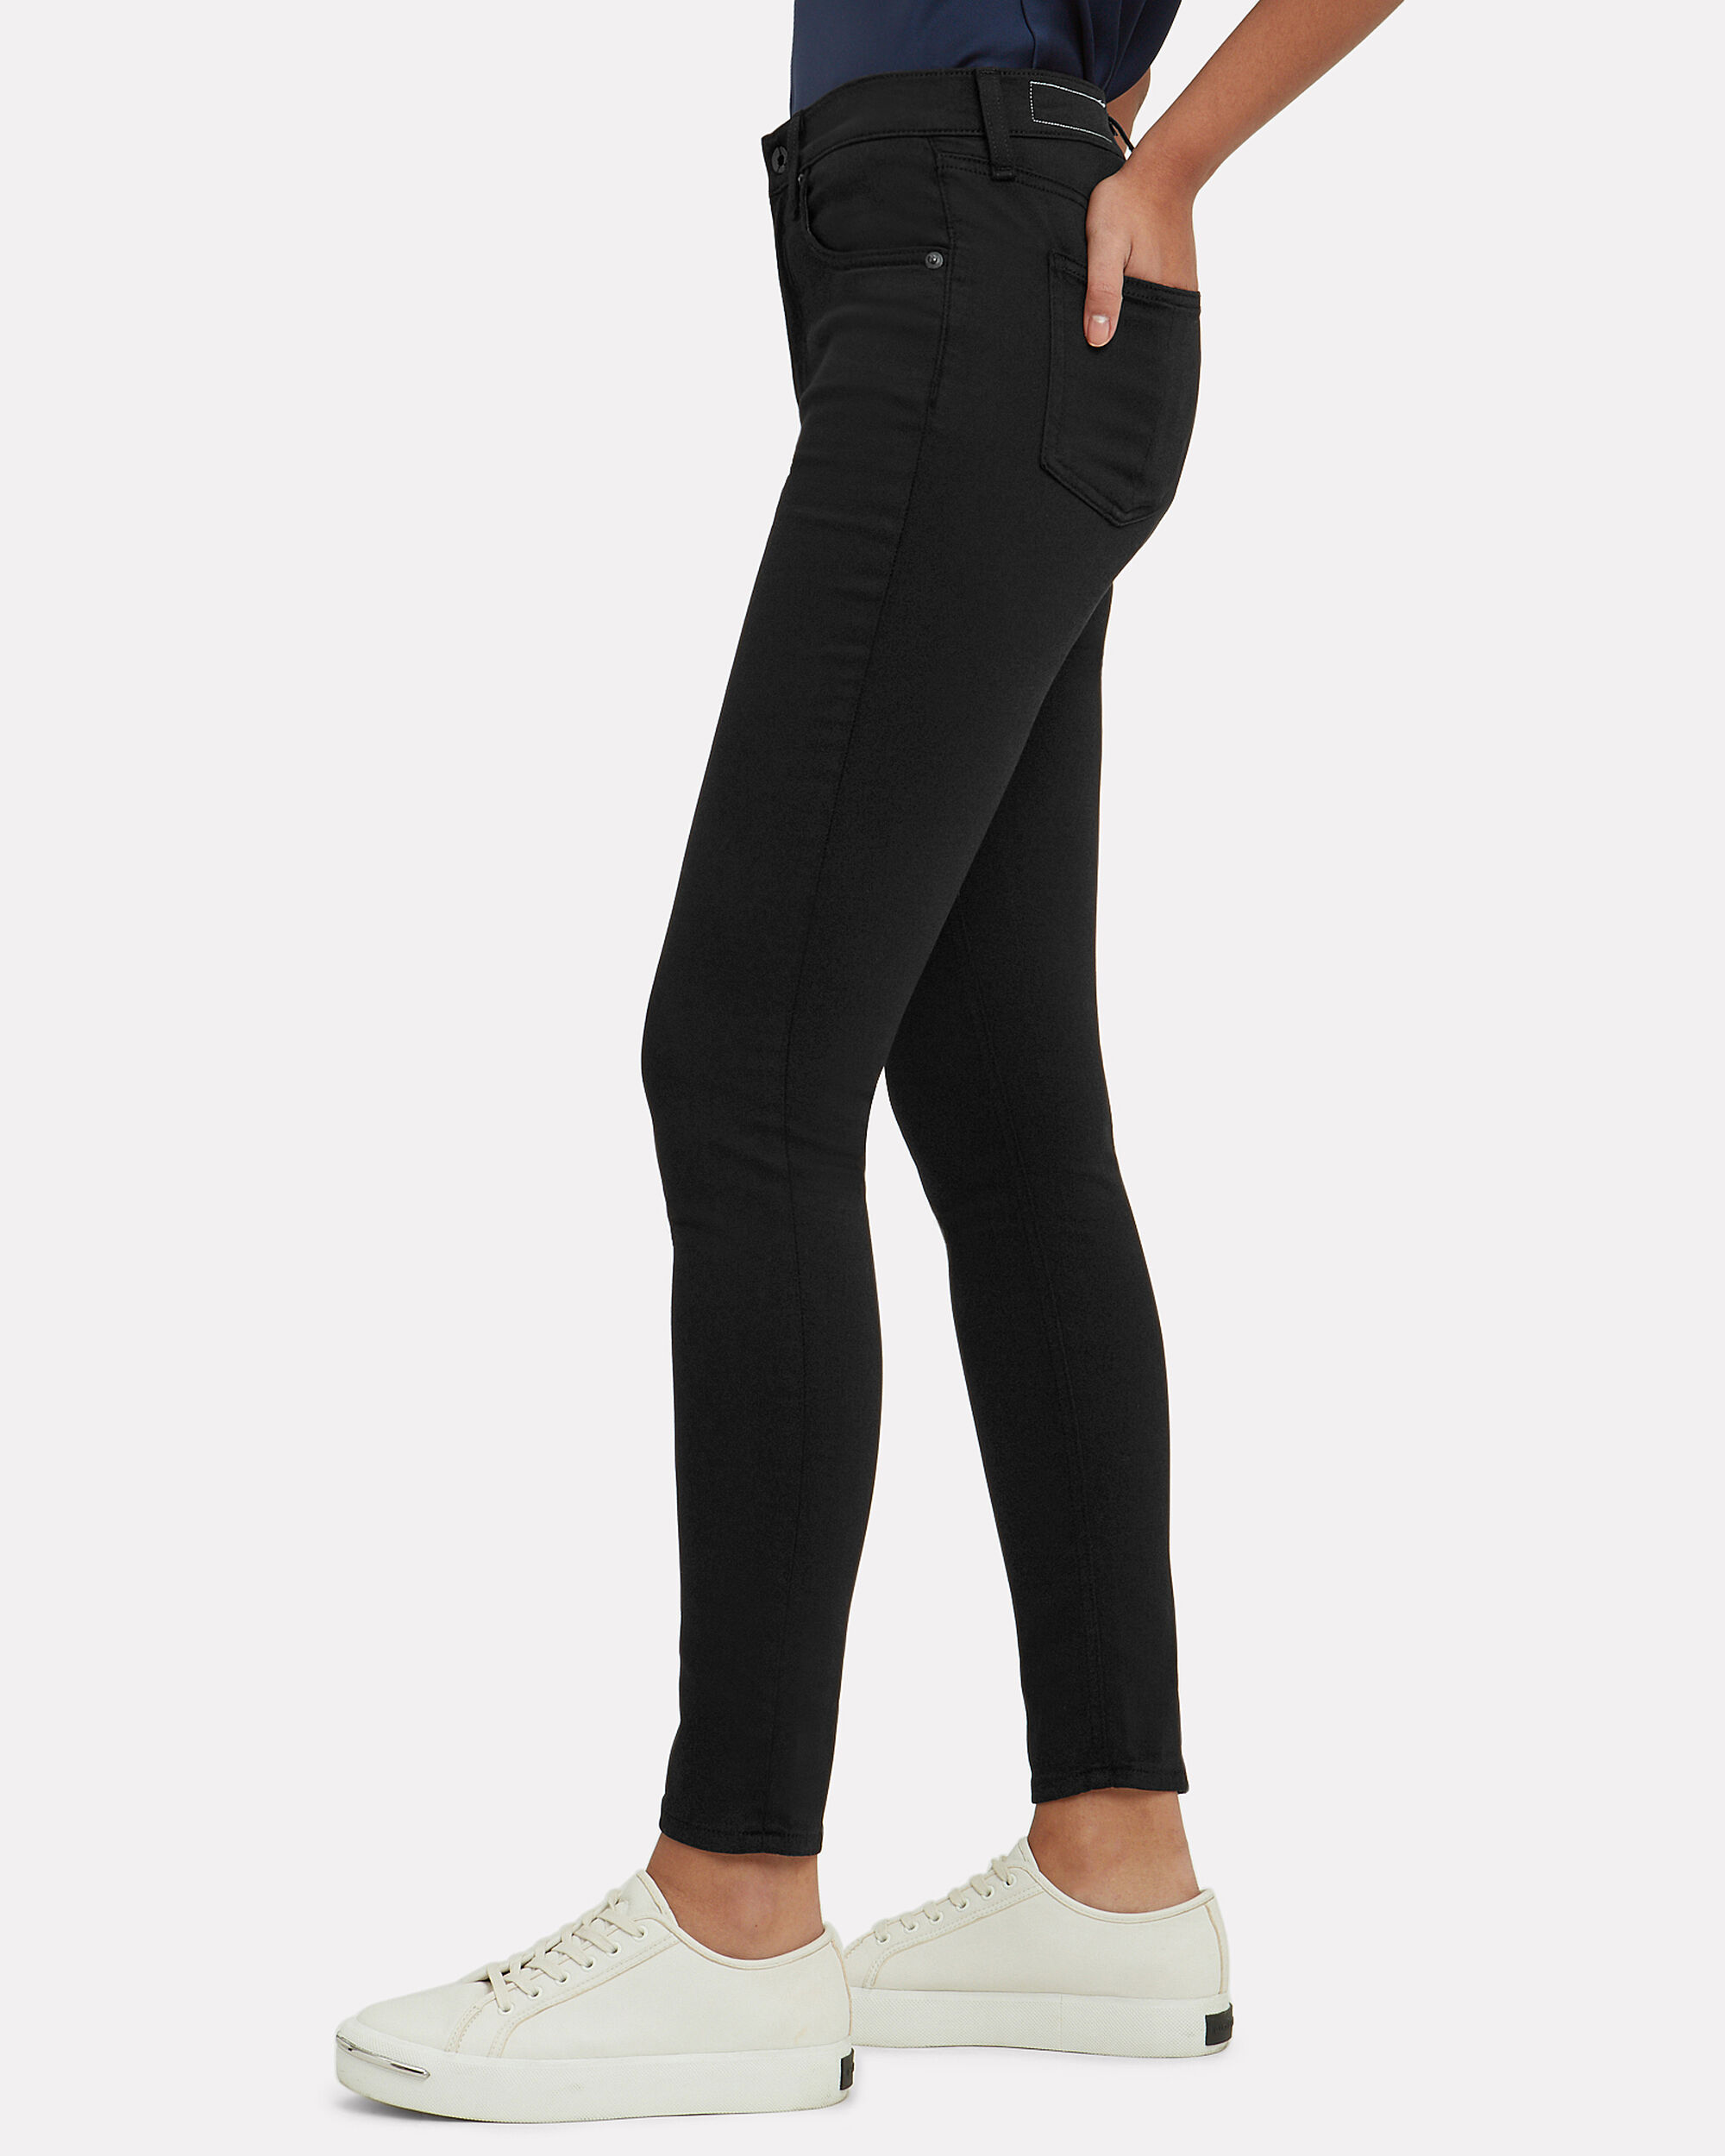 Plush Black High-Rise Skinny Jeans, BLACK, hi-res